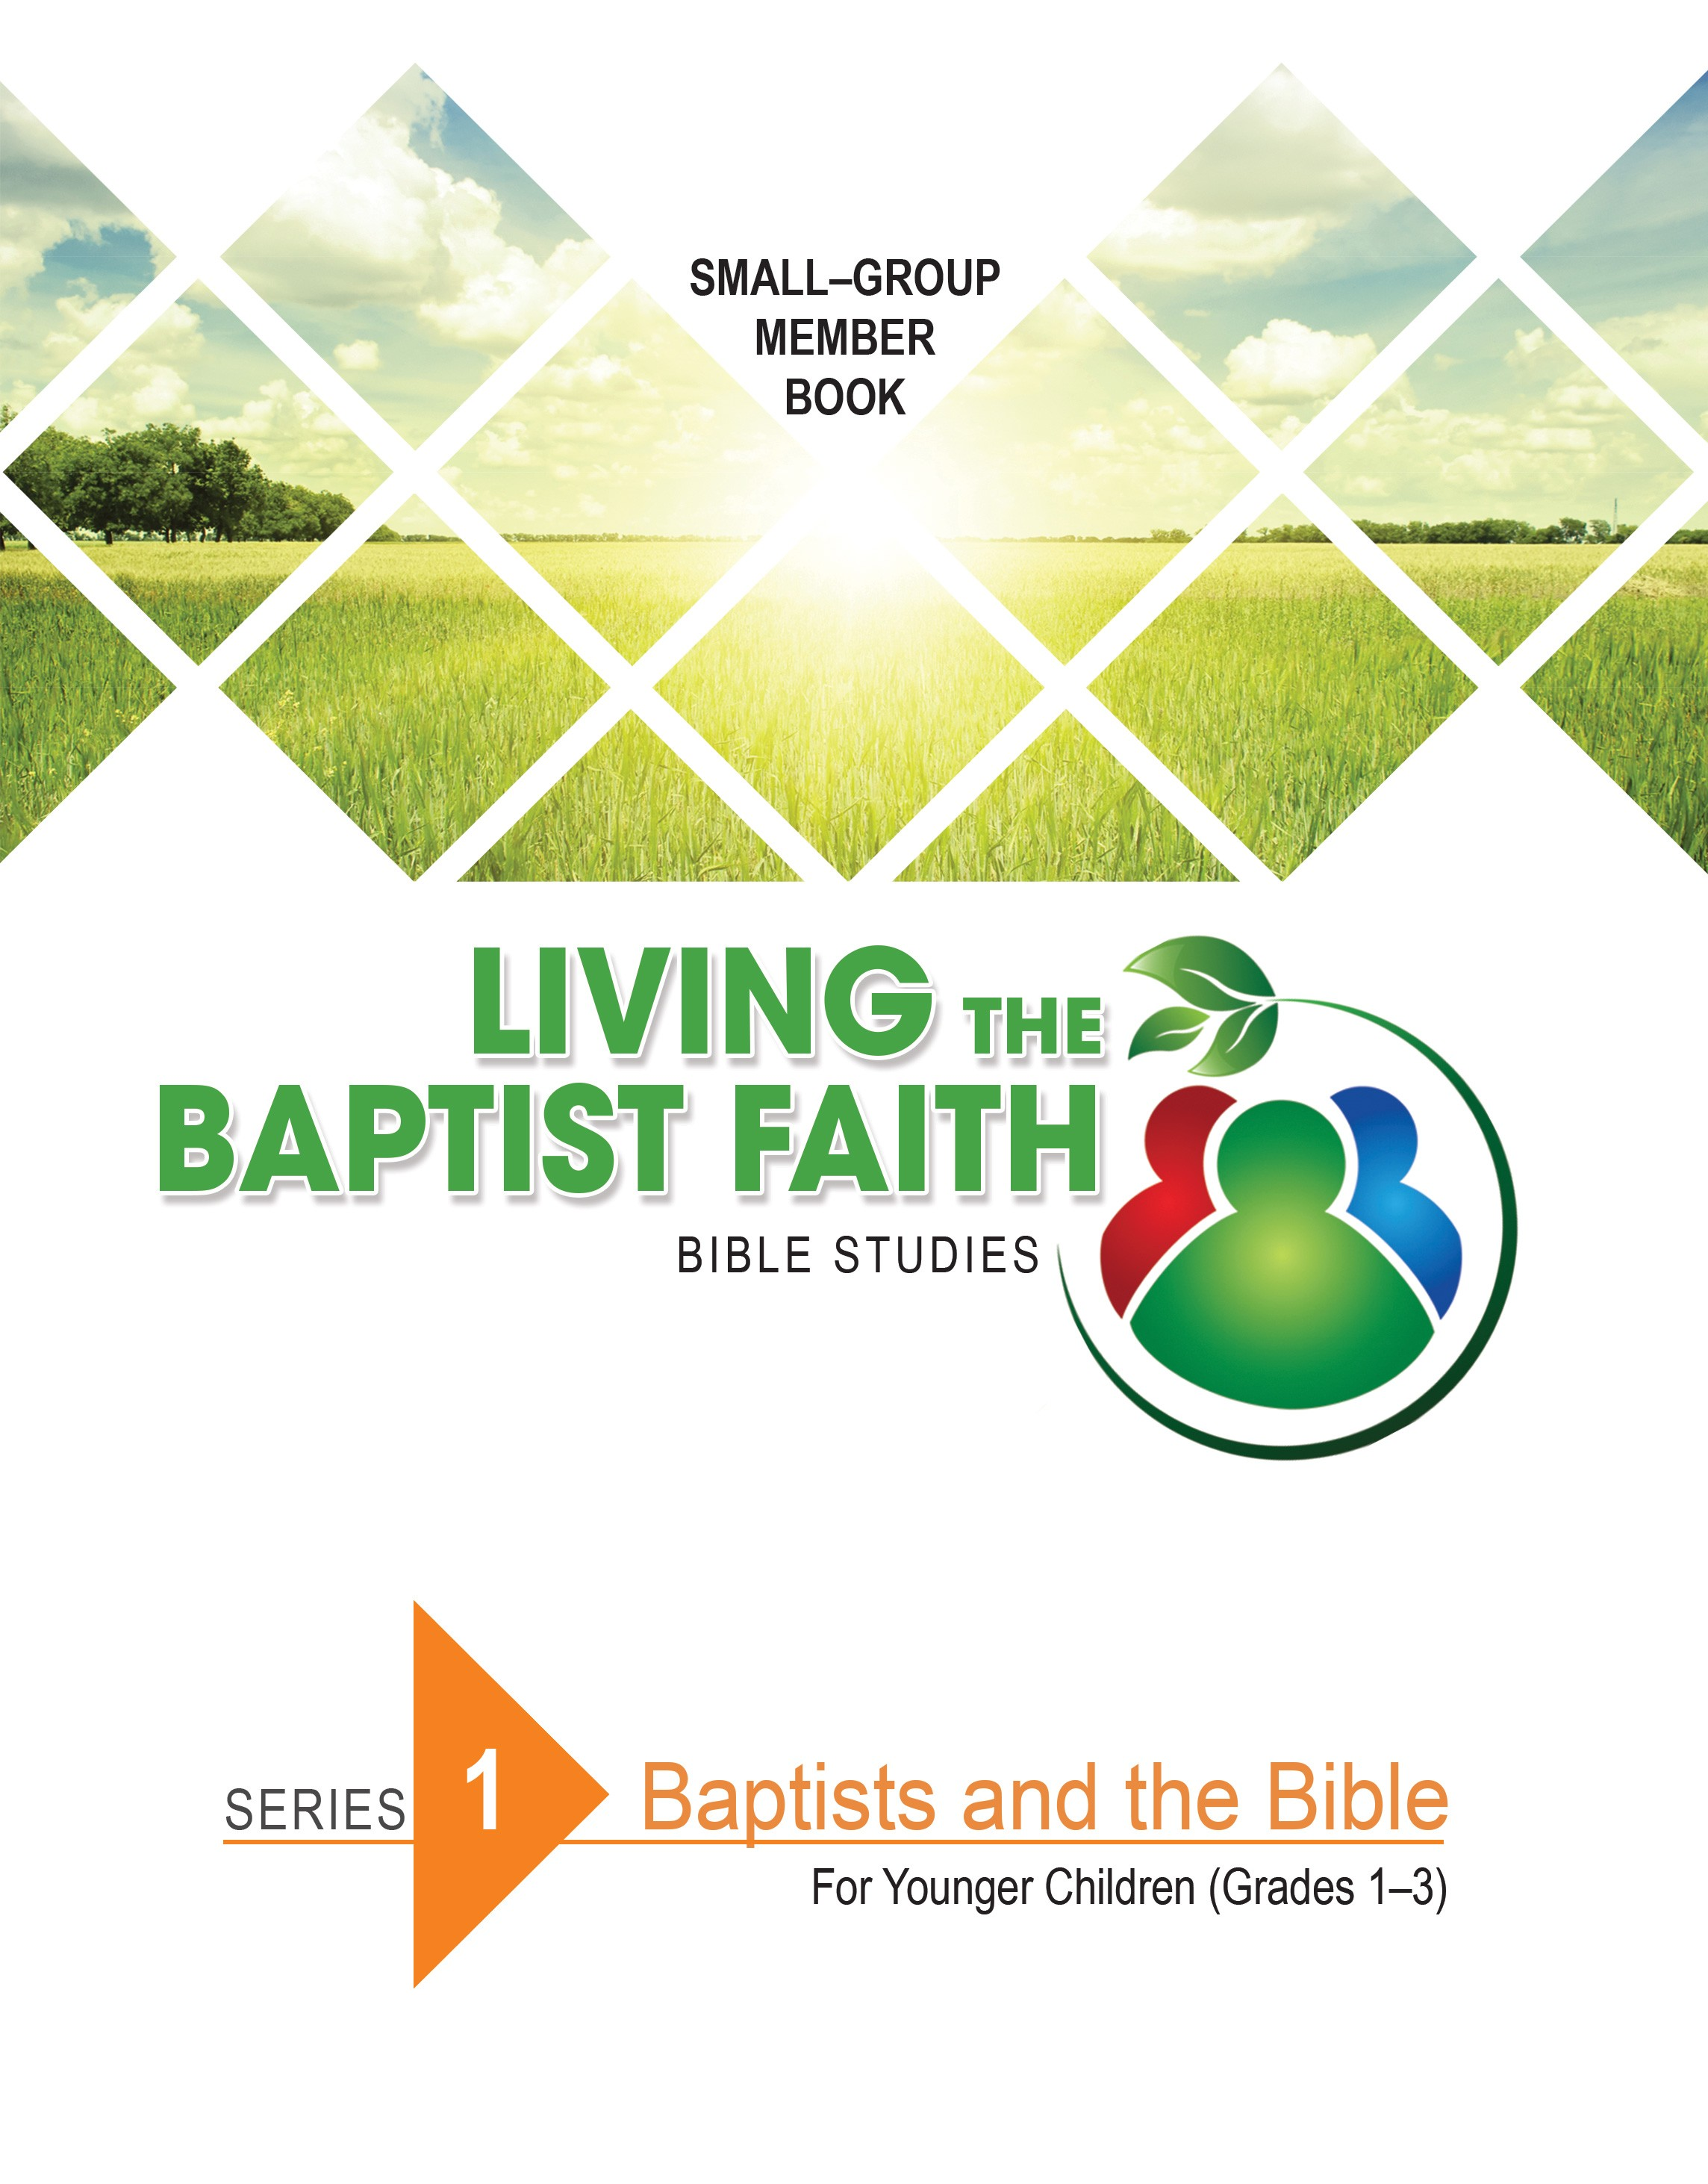 Series 1: Baptists and the Bible (for Younger Children)